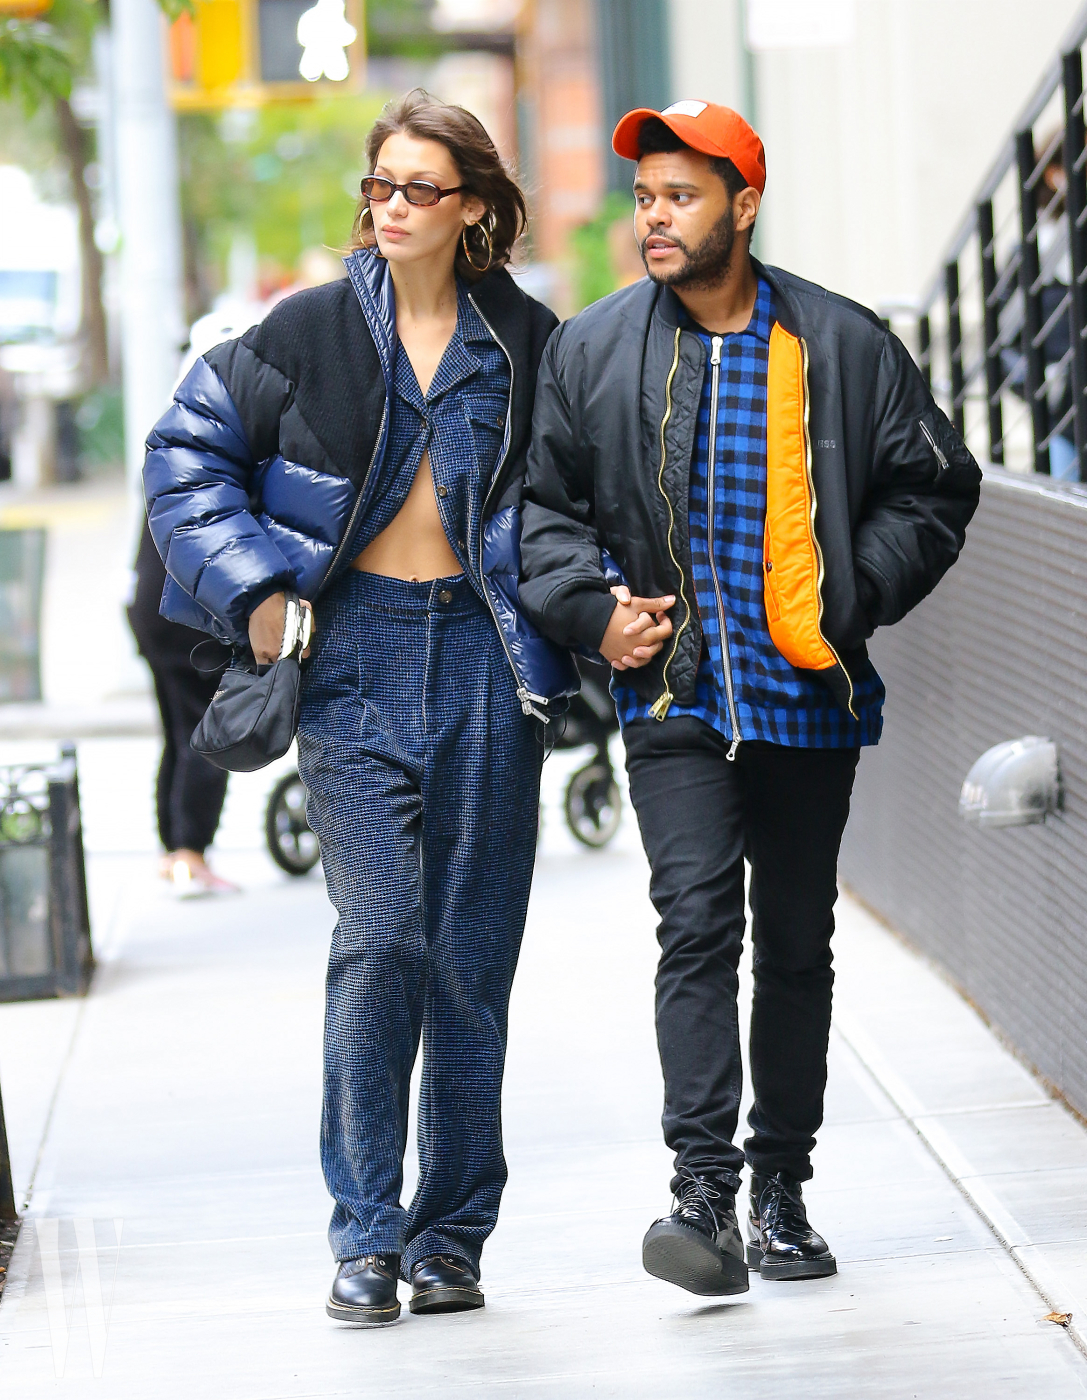 Bella Hadid and The Weeknd were spotted taking a romantic stroll around Tribeca Neighborhood.